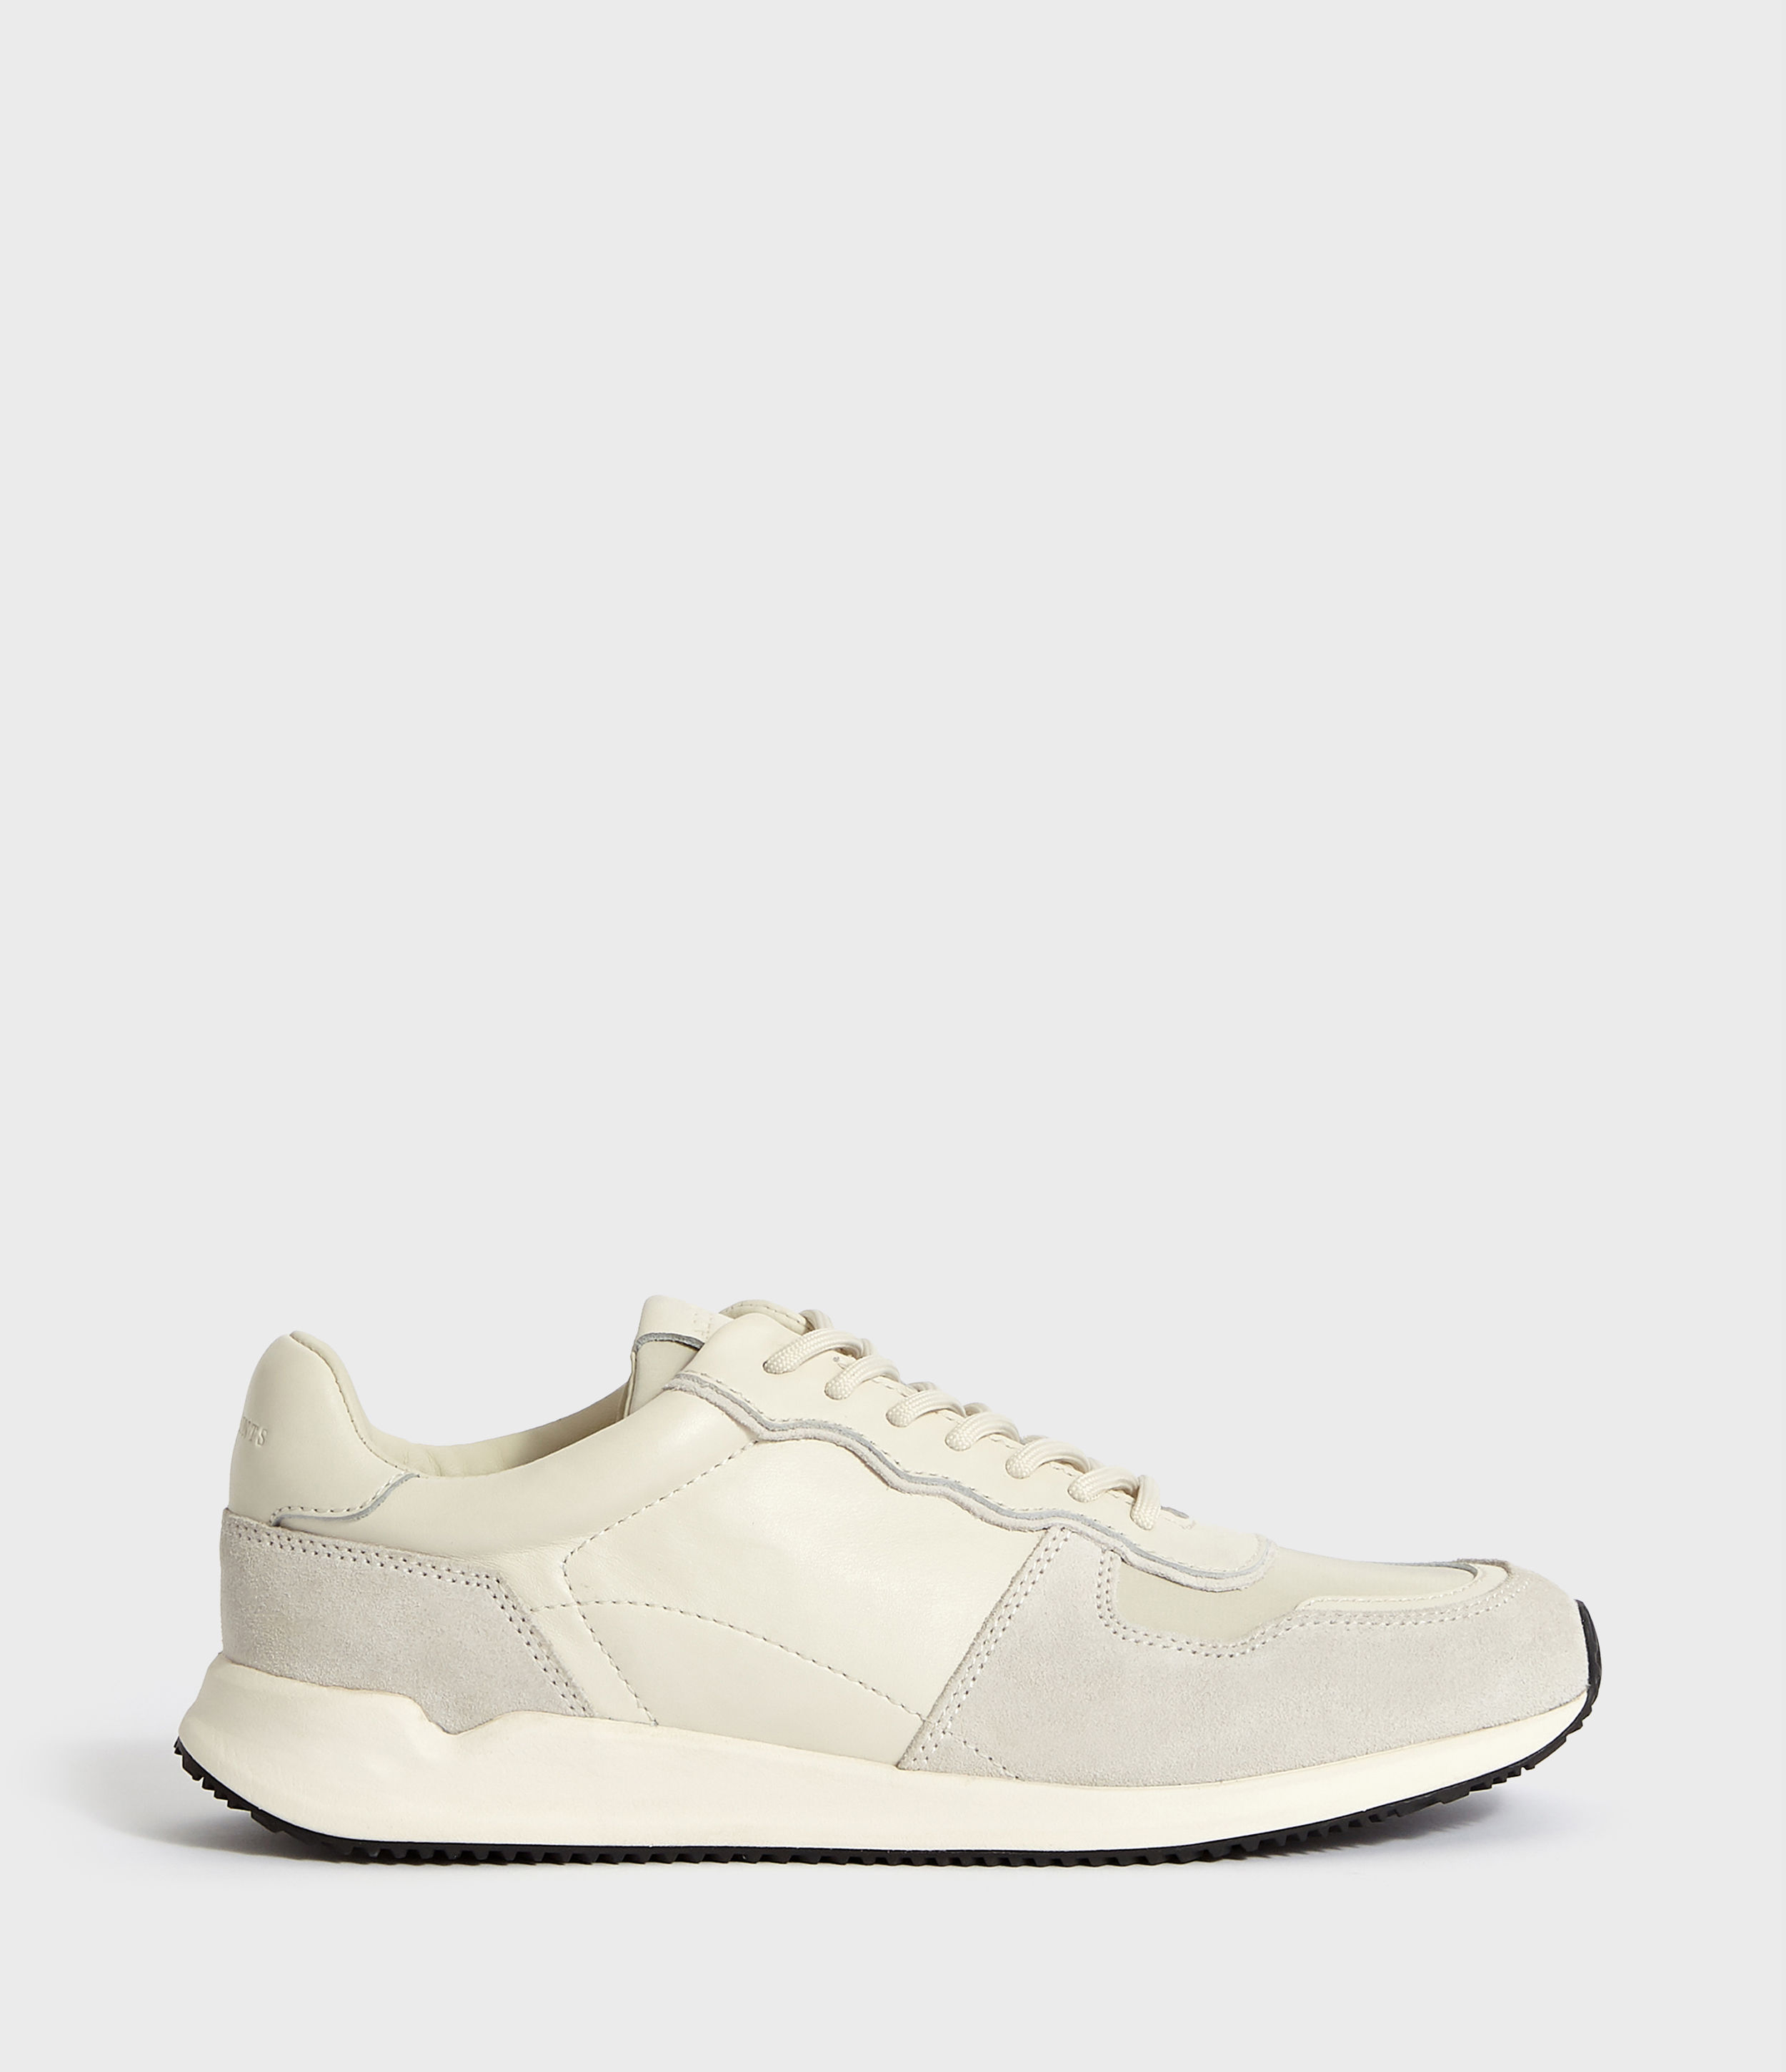 AllSaints Men's Leather Milford Runner Trainer, Cream and White, Size: UK 8